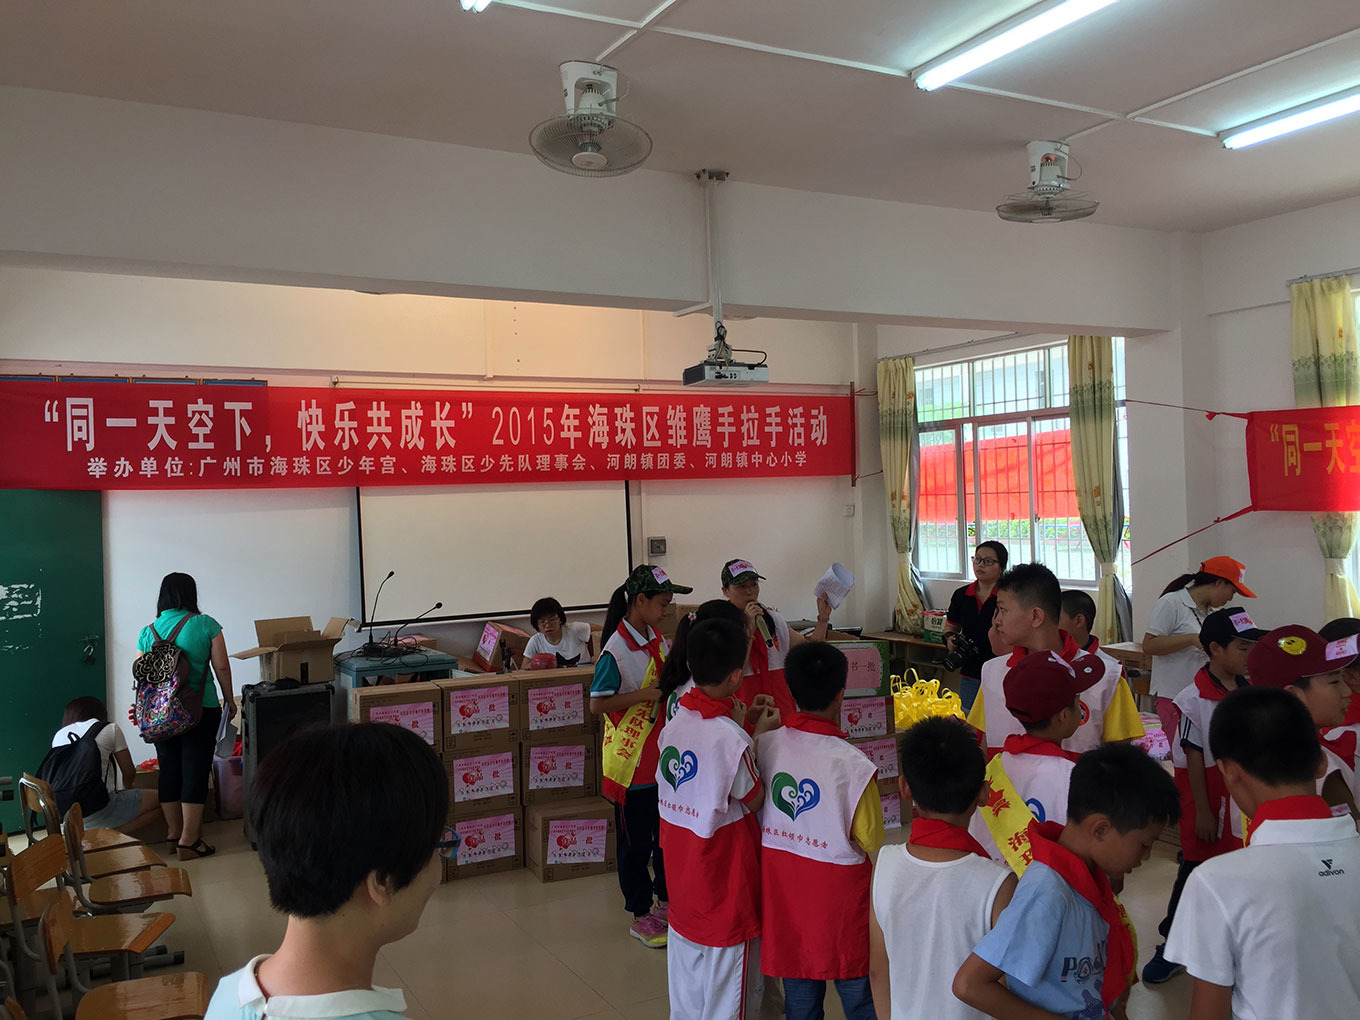 2015 Haizhu District eagle hand in hand activities